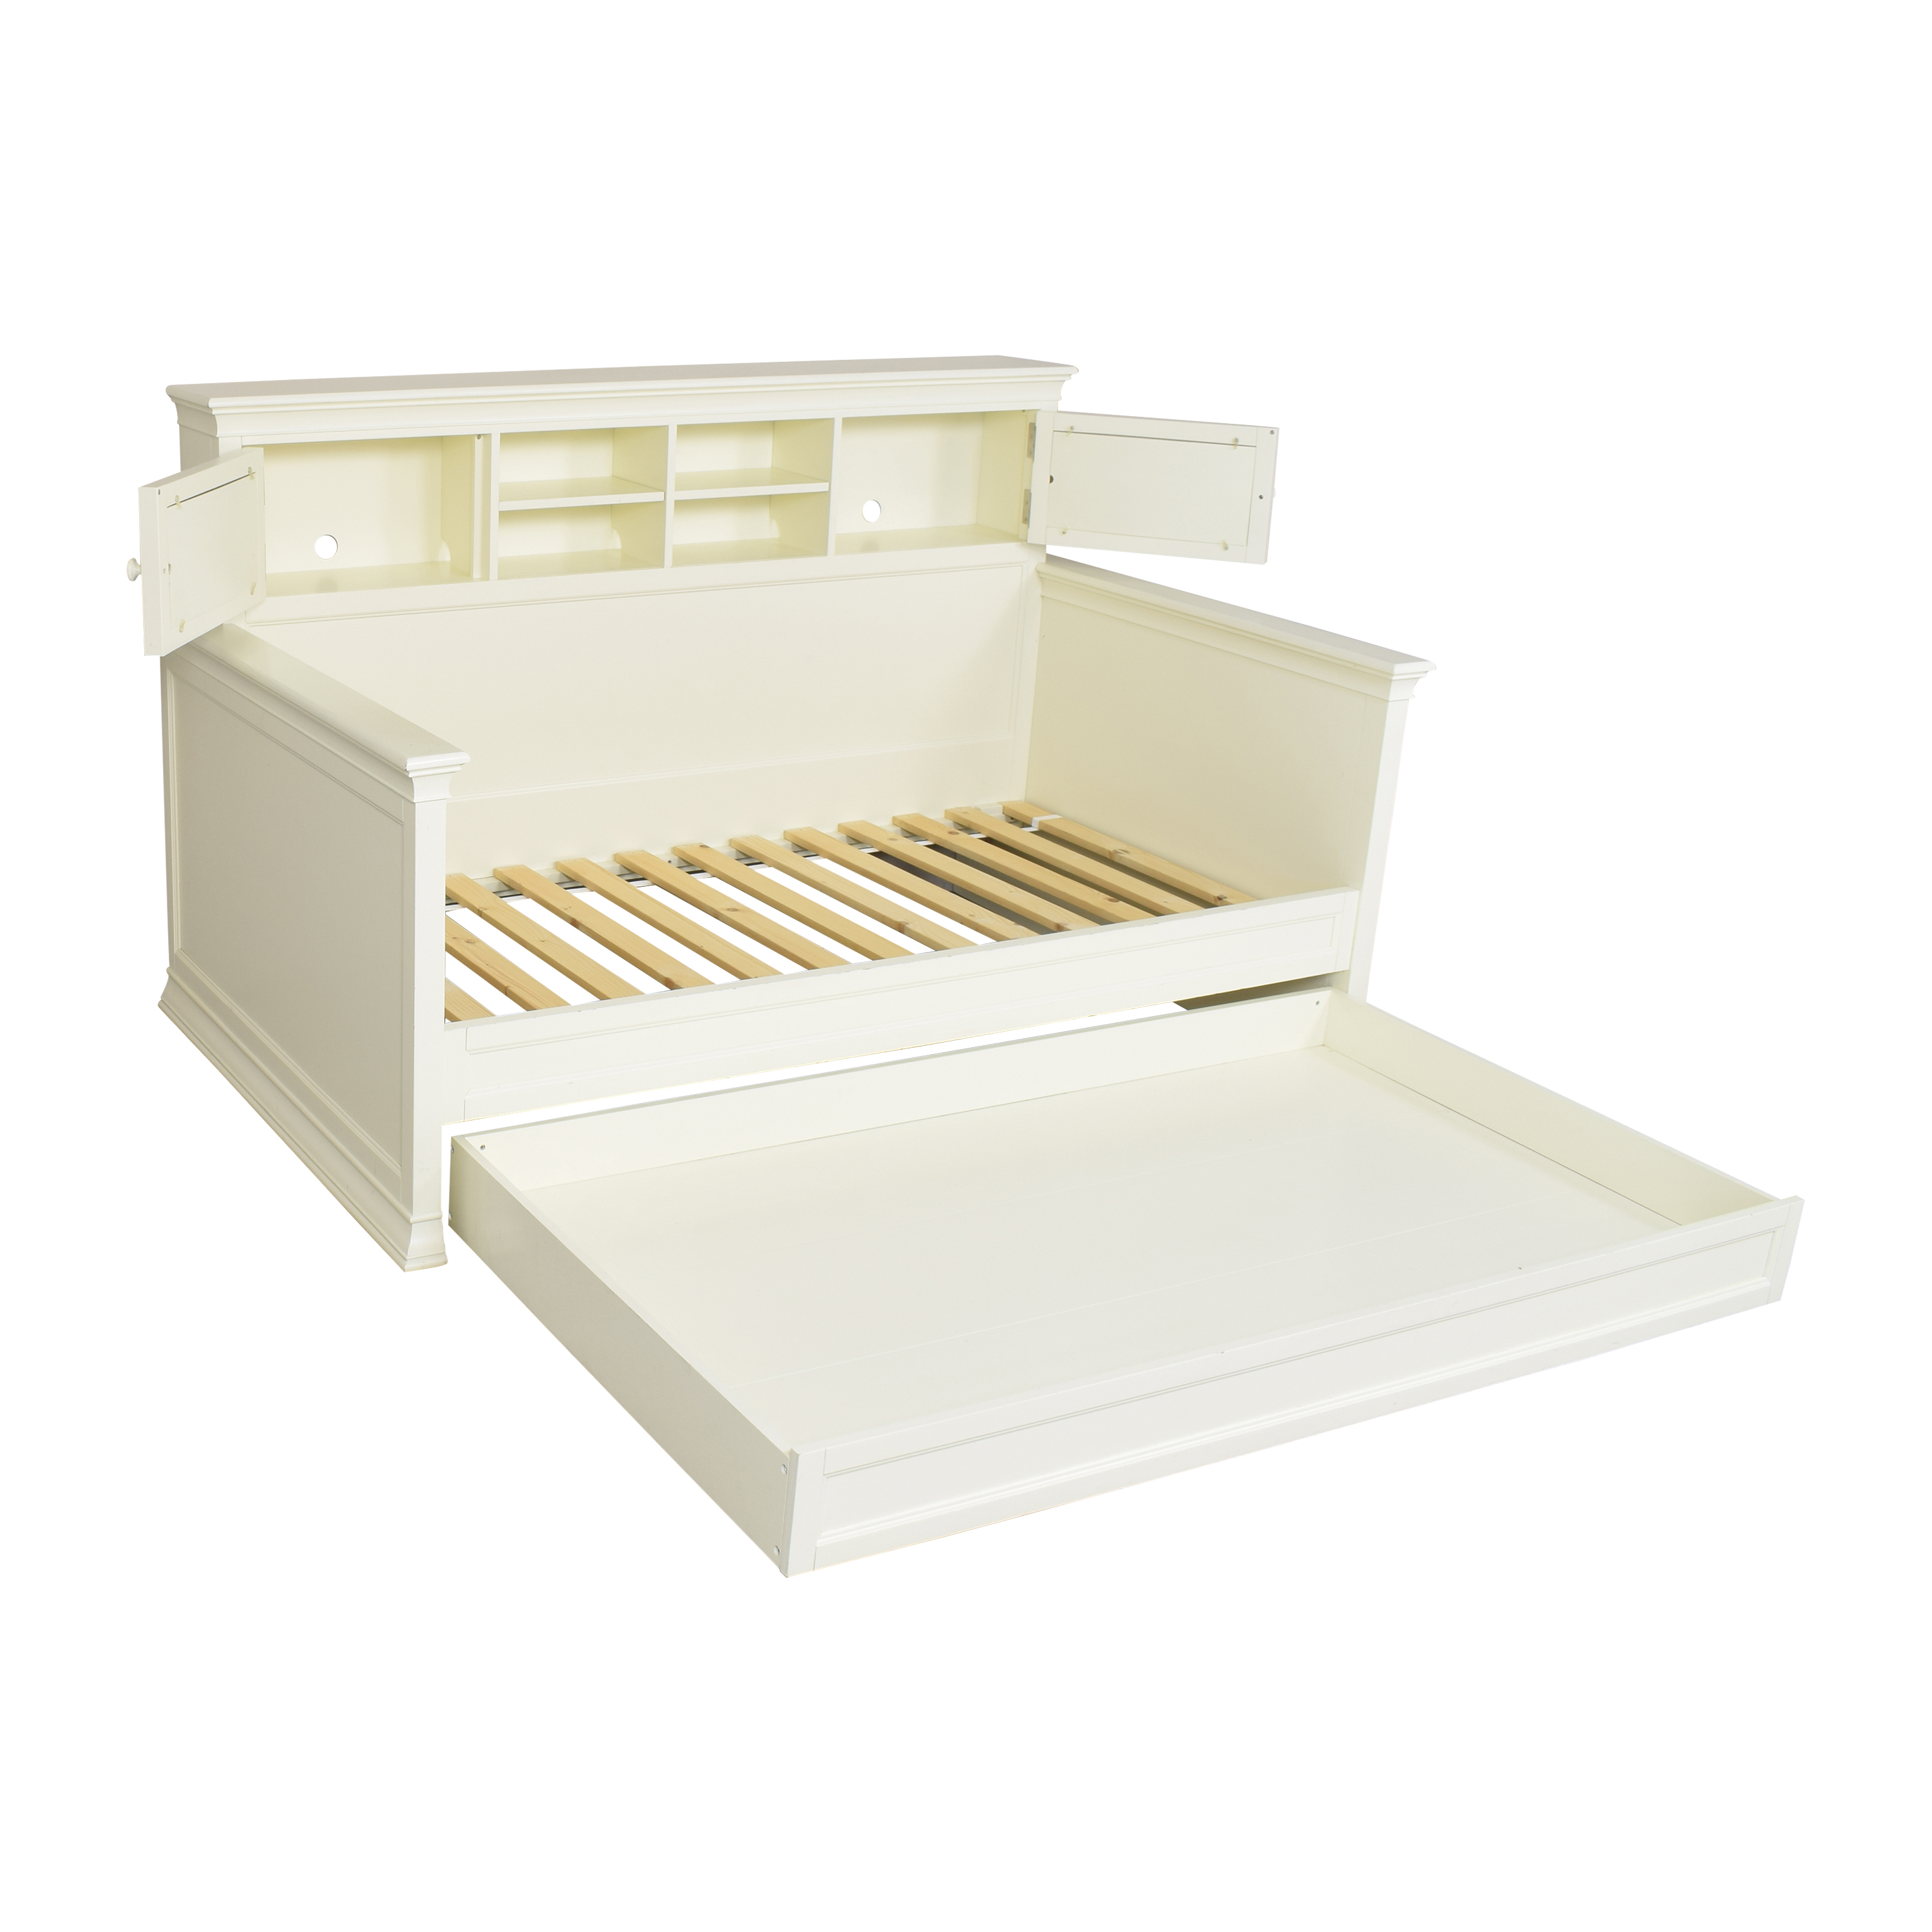 Pottery Barn Teen Pottery Barn Teen Display-It Daybed with Trundle Beds